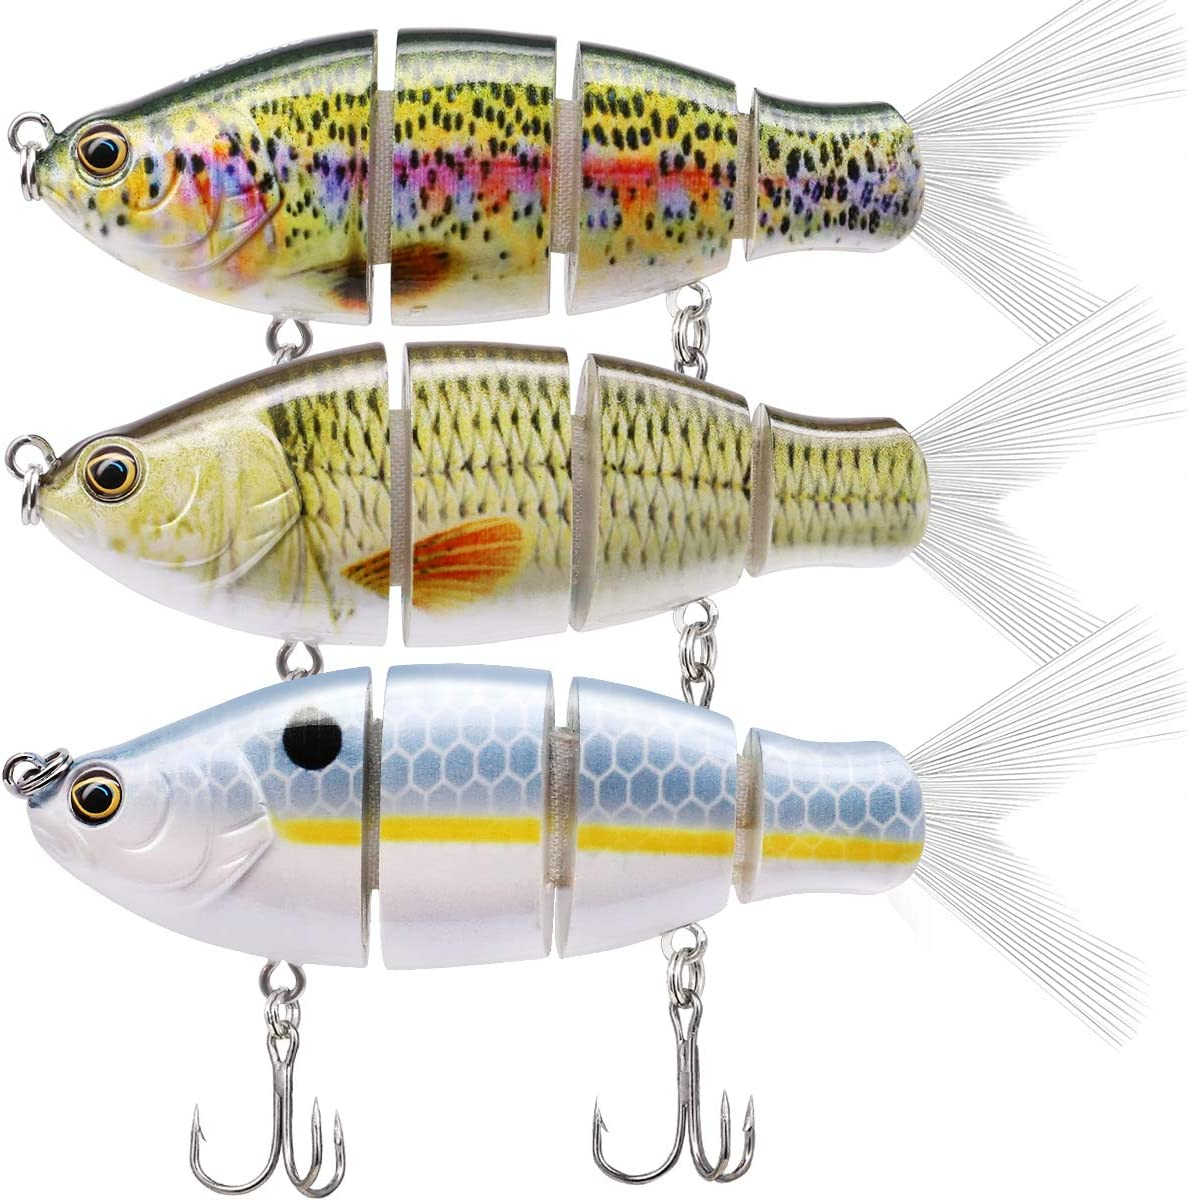 TRUSCEND Fishing Lifelike Lures Kit